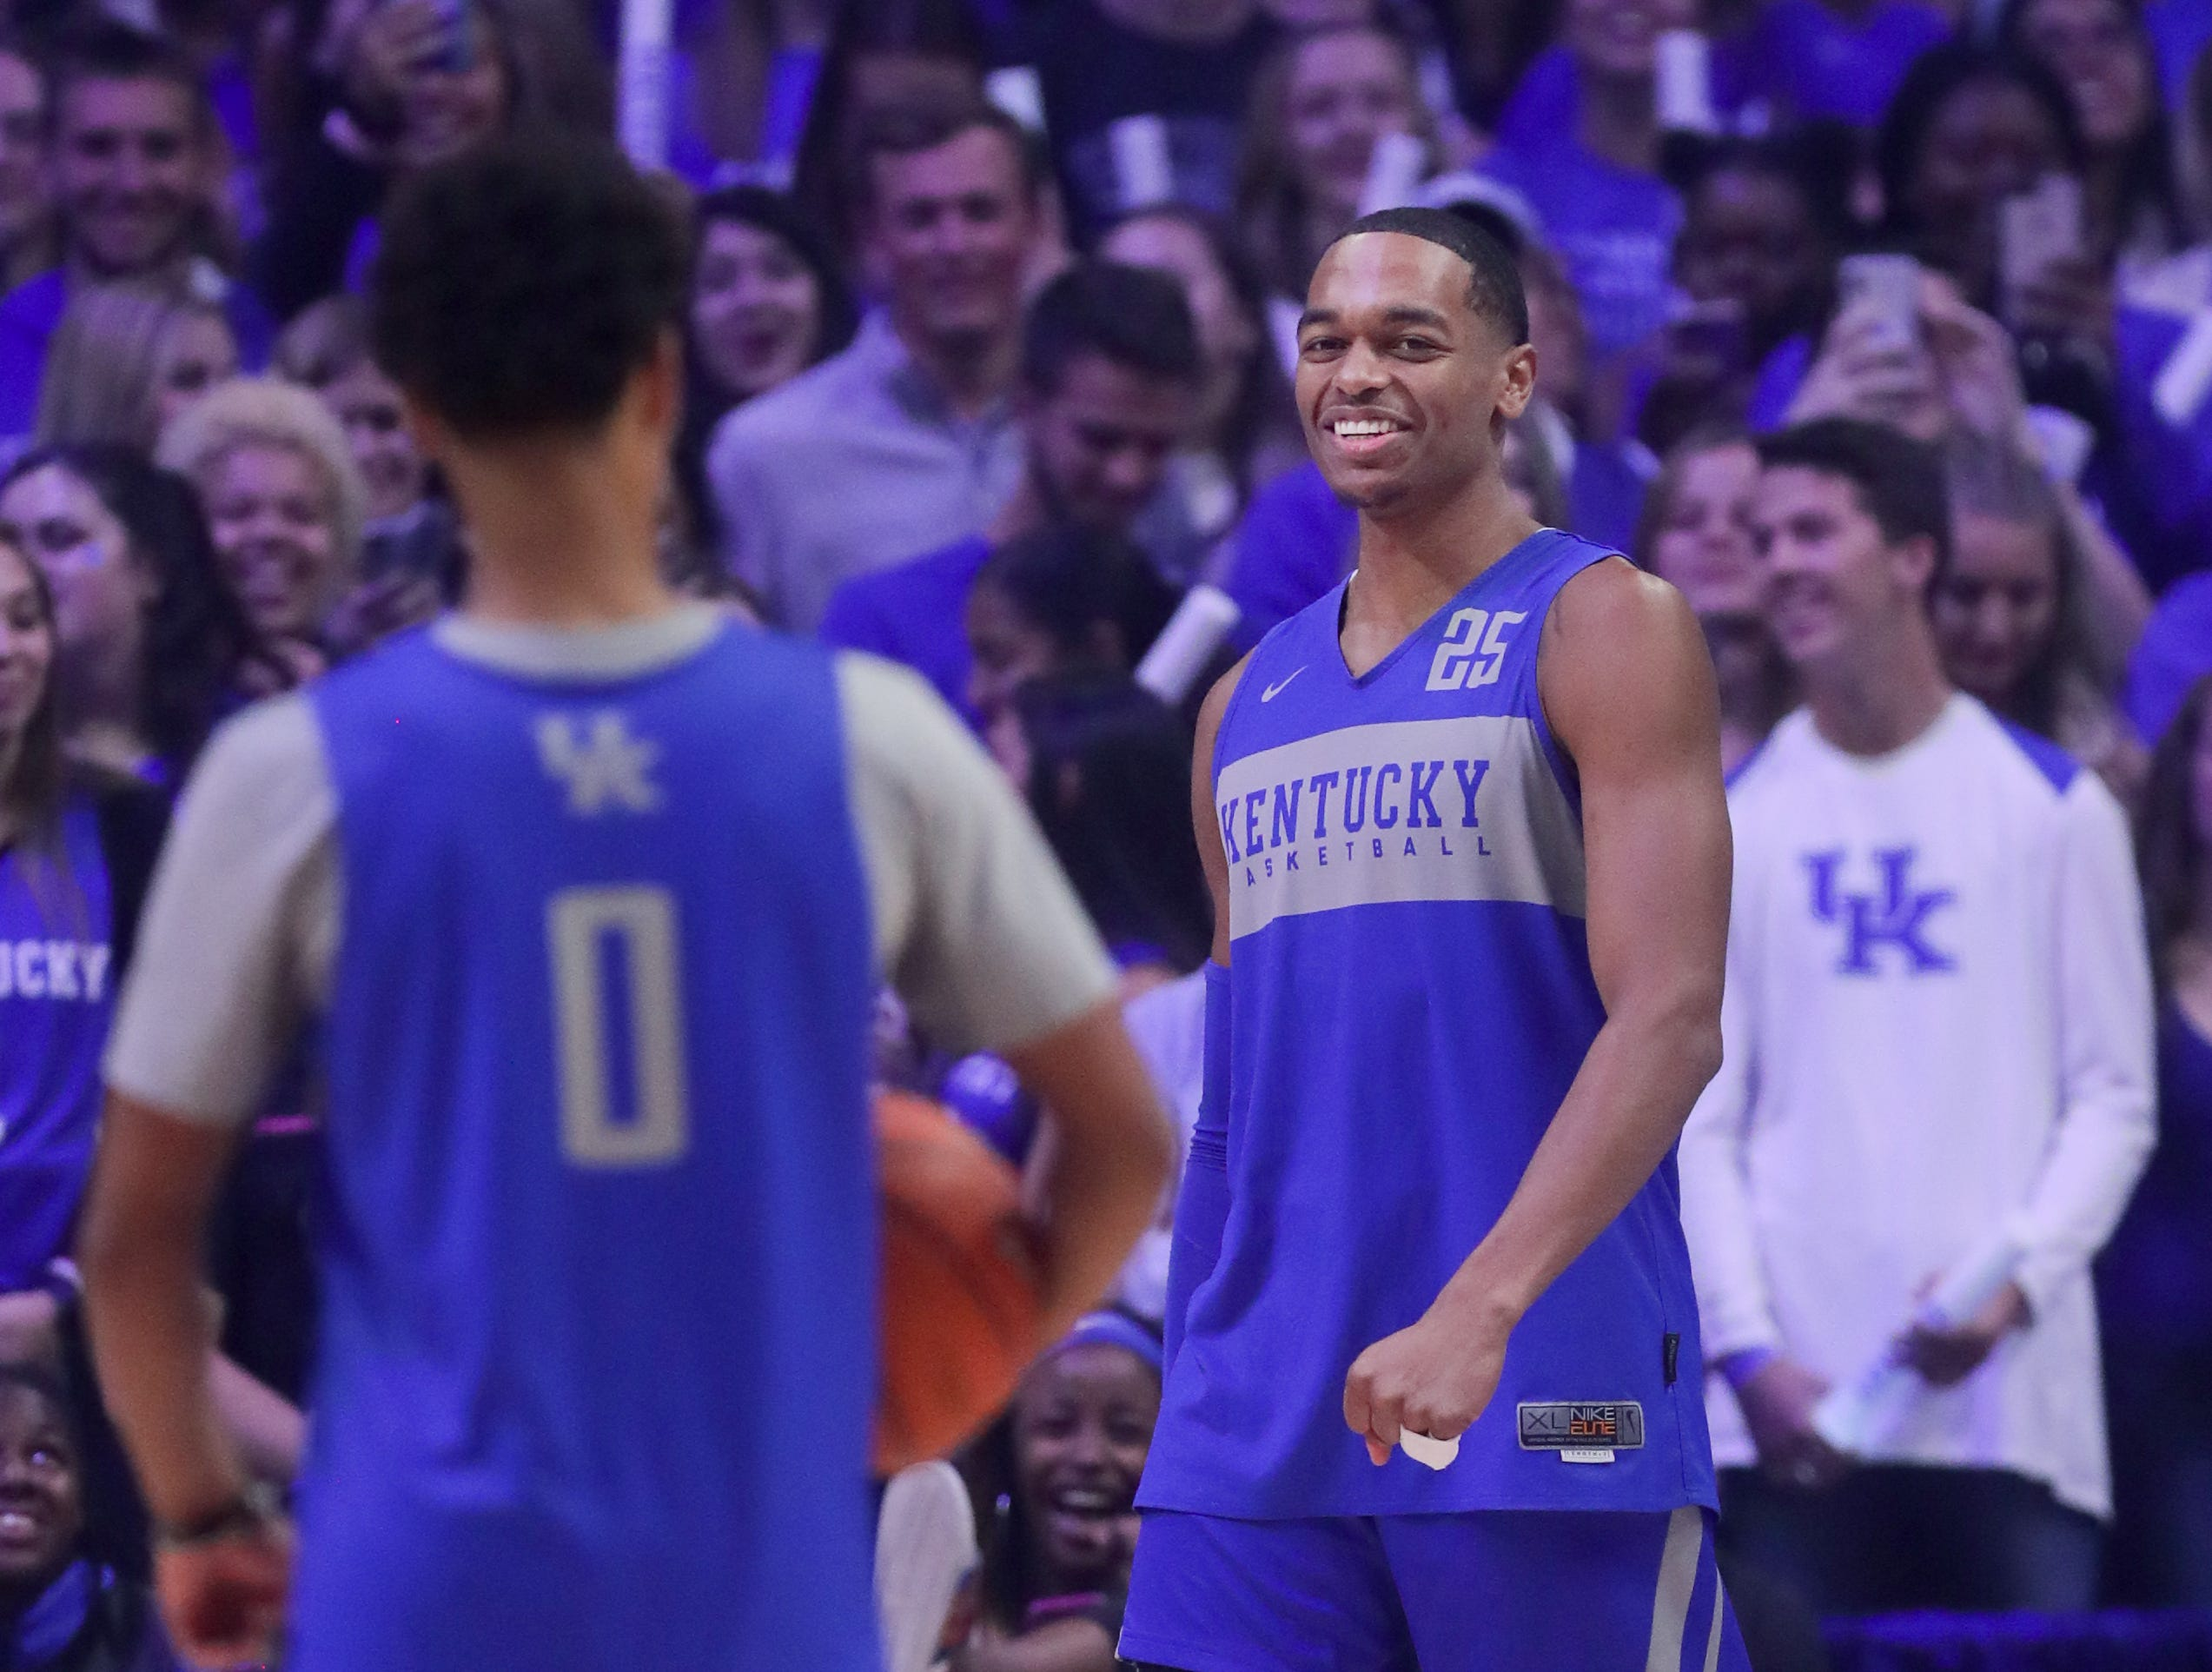 Kentucky PJ Washington was all smiles after his showing in the dunk contest at Big Blue Madness in Lexington, Kentucky.